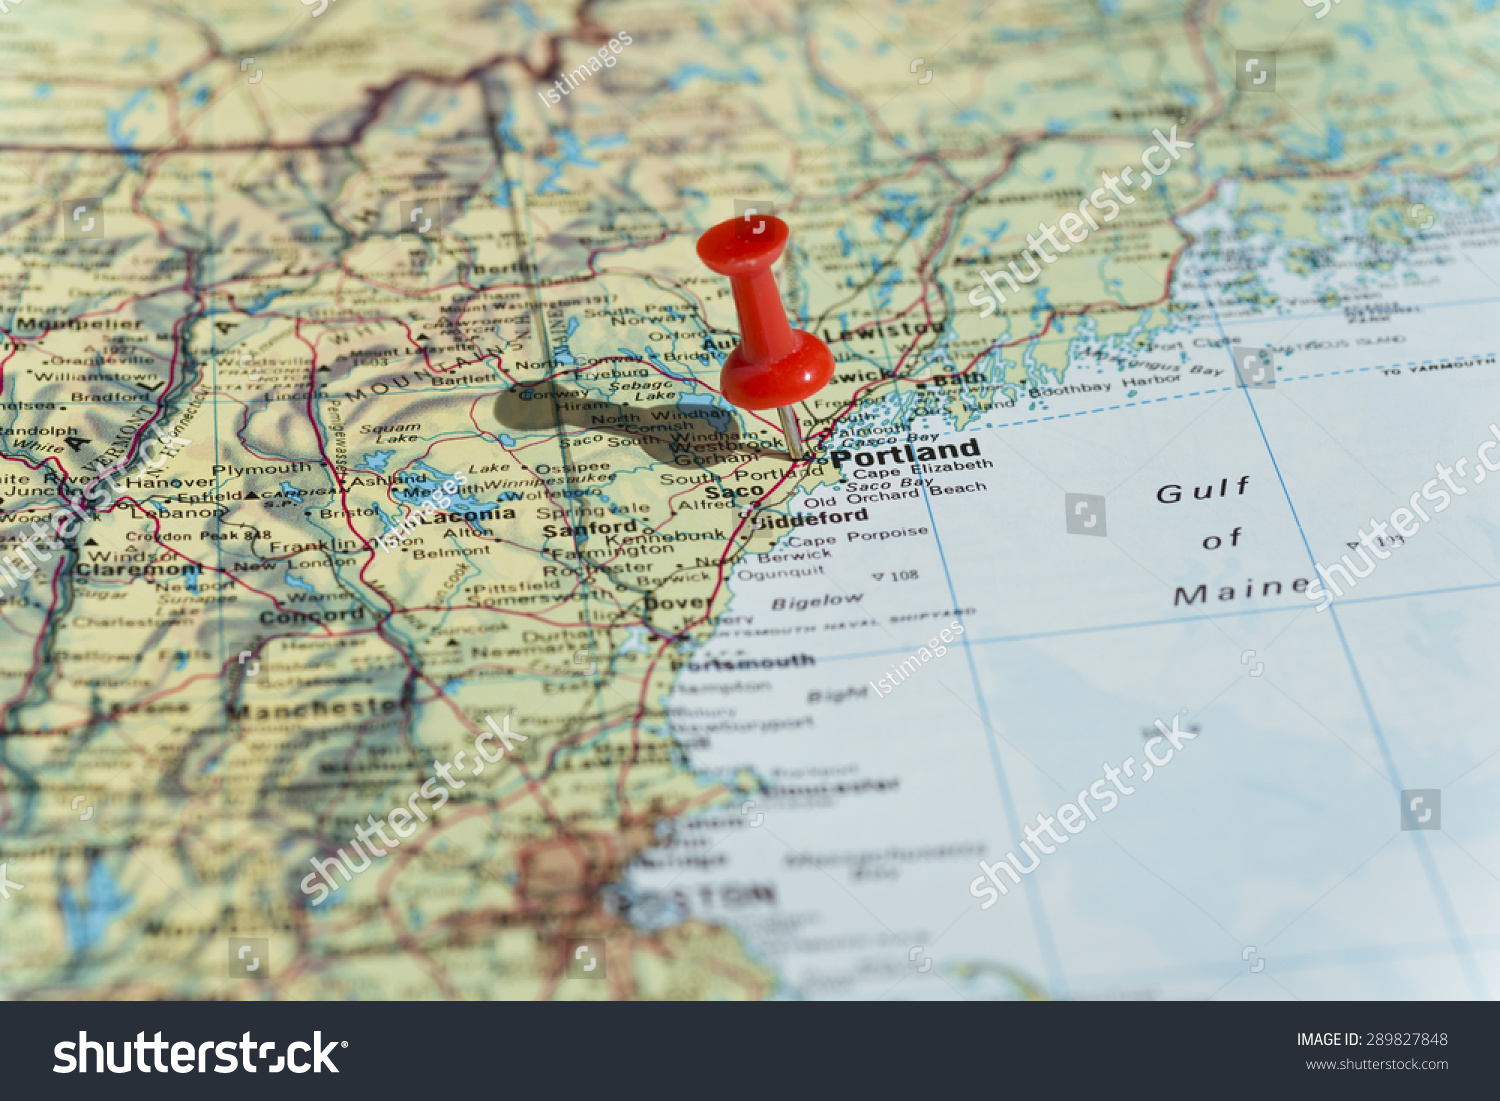 Portland Marked On Map Red Pushpin Stock Photo (Edit Now